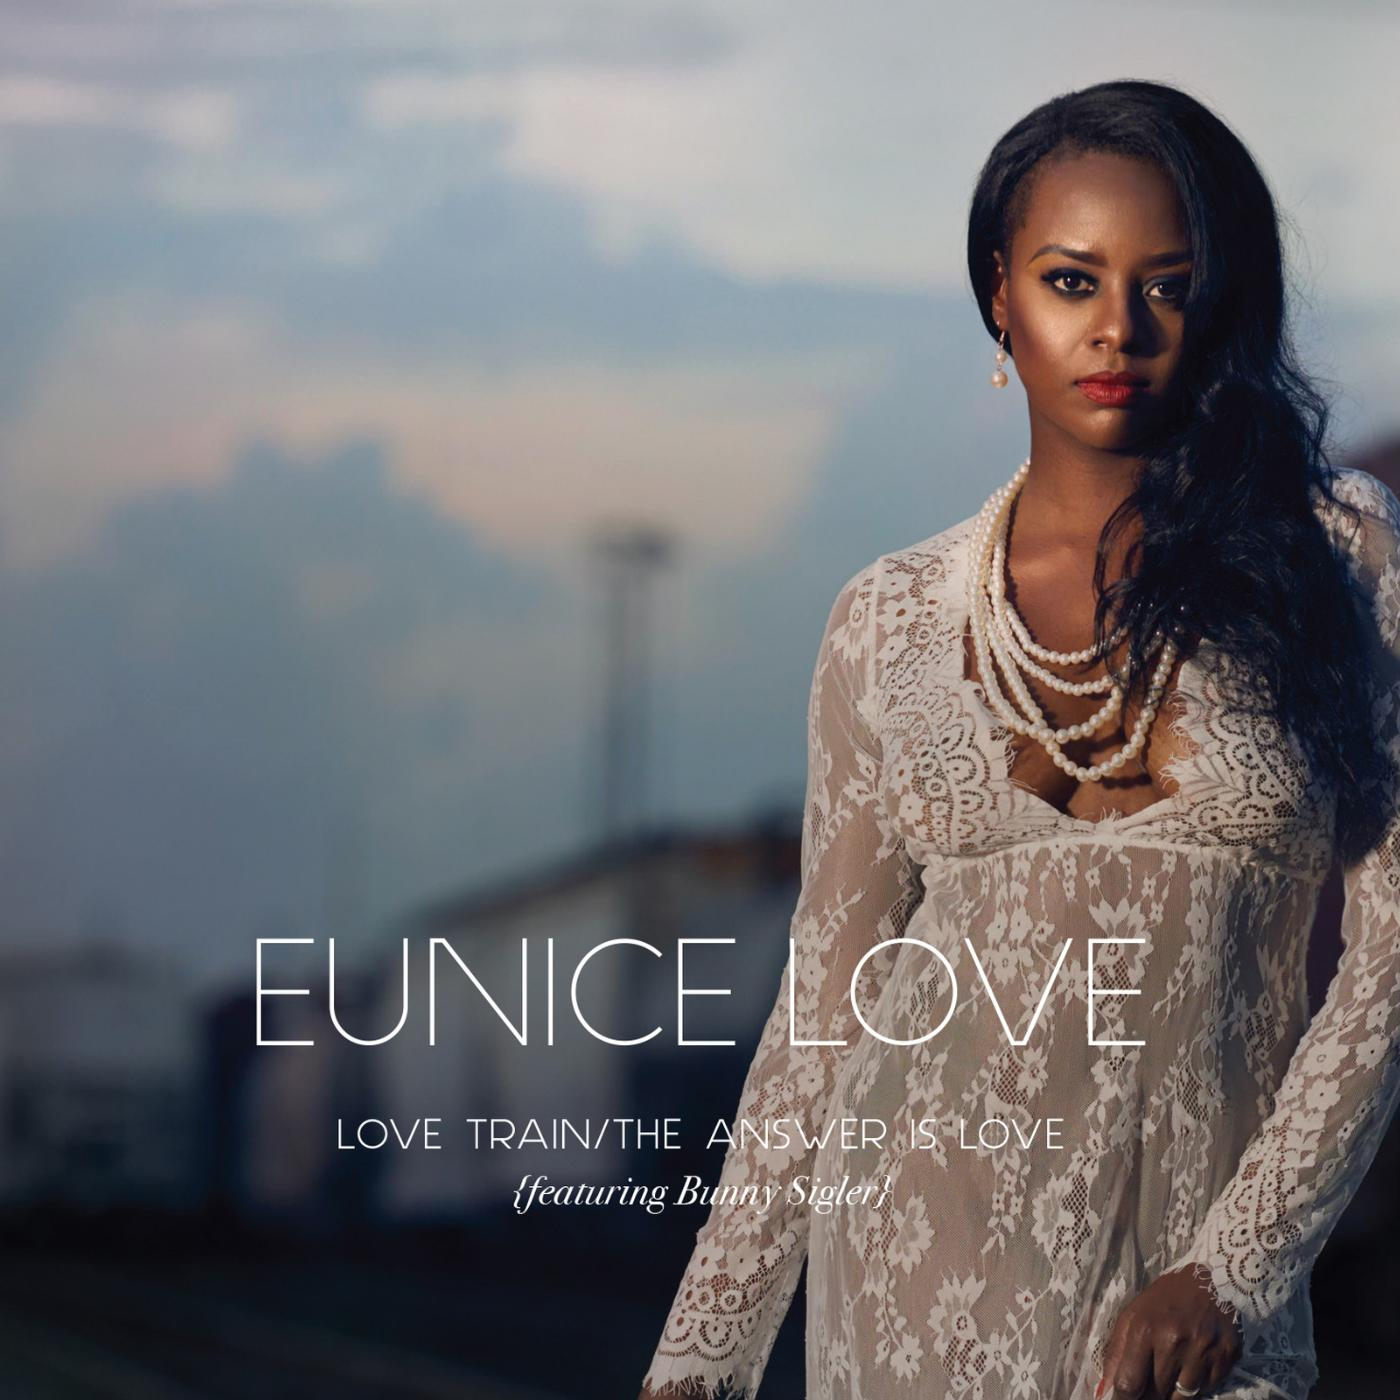 eunice singles Browse singles in eunice, louisiana - 100% free mingle2 is the place to meet eunice singles there are thousands of men and women looking for love or friendship in eunice, louisiana.